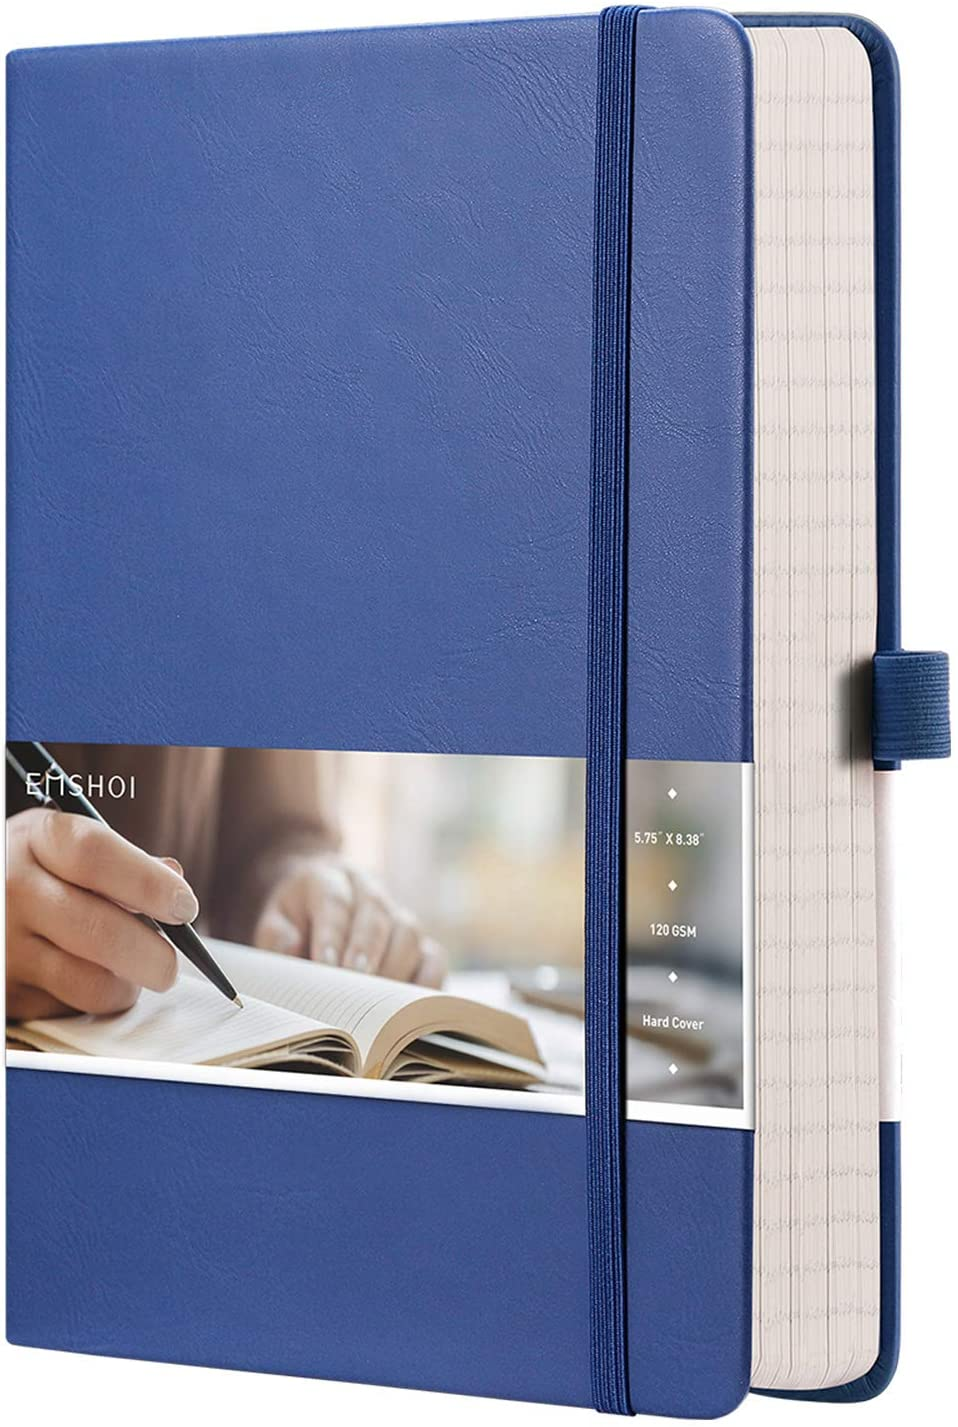 EMSHOI College Ruled Notebook - 256 Lined Jour Numbered Safety and trust Pages A5 Indianapolis Mall